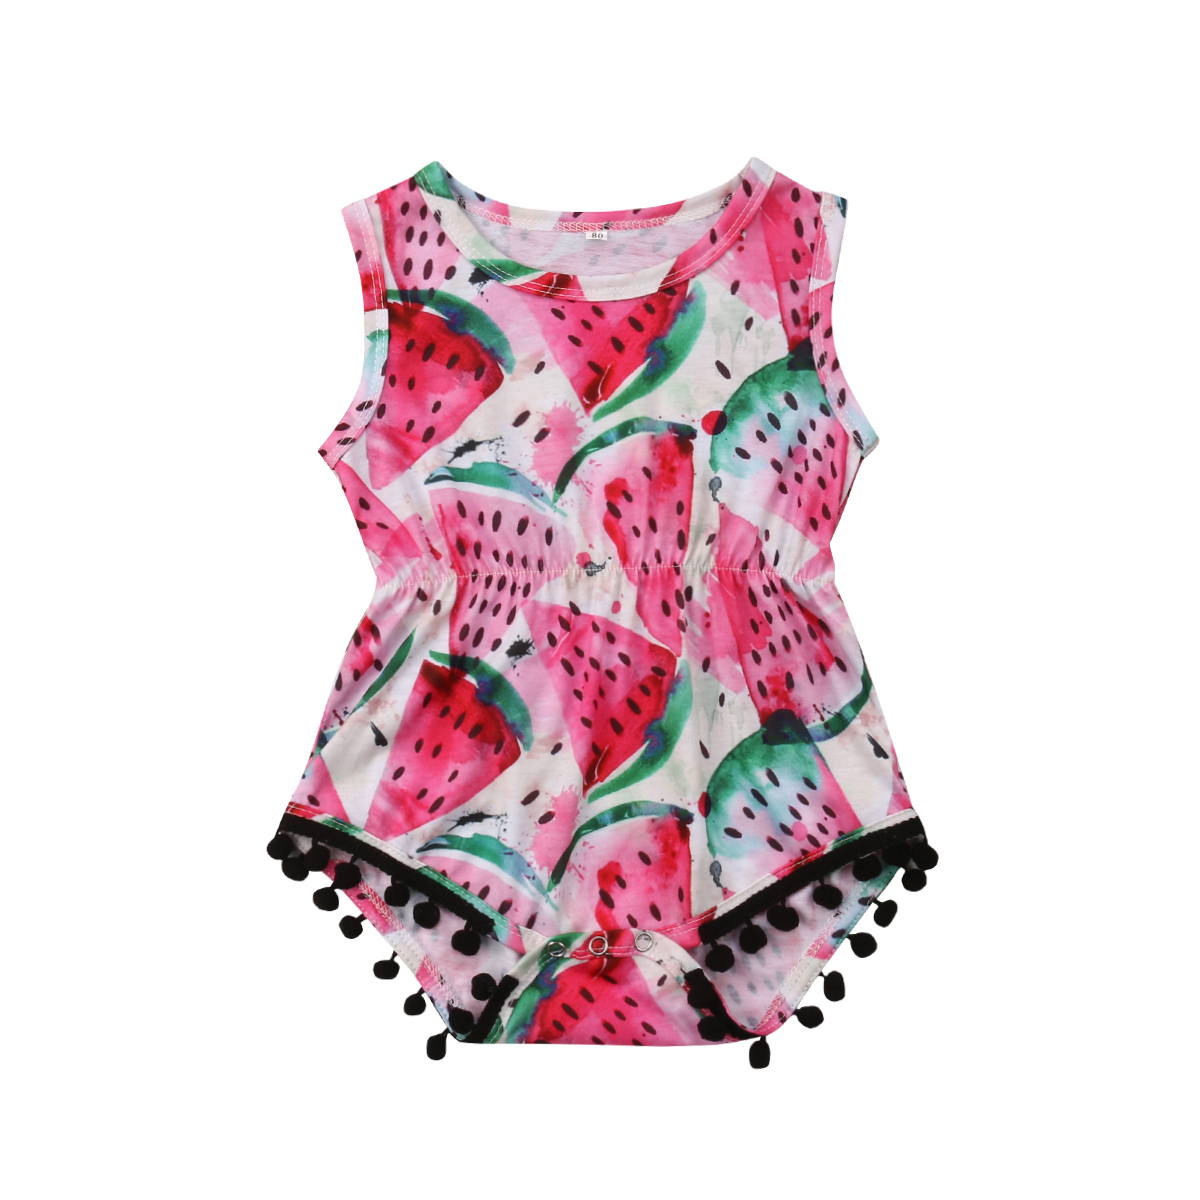 3e97439ebe1 Detail Feedback Questions about 3 18M Infant Newborn Baby Girl Sleeveless  Watermelon Print Tassel Ball Romper Jumpsuit Outfits Summer Sunsuit Clothes  on ...